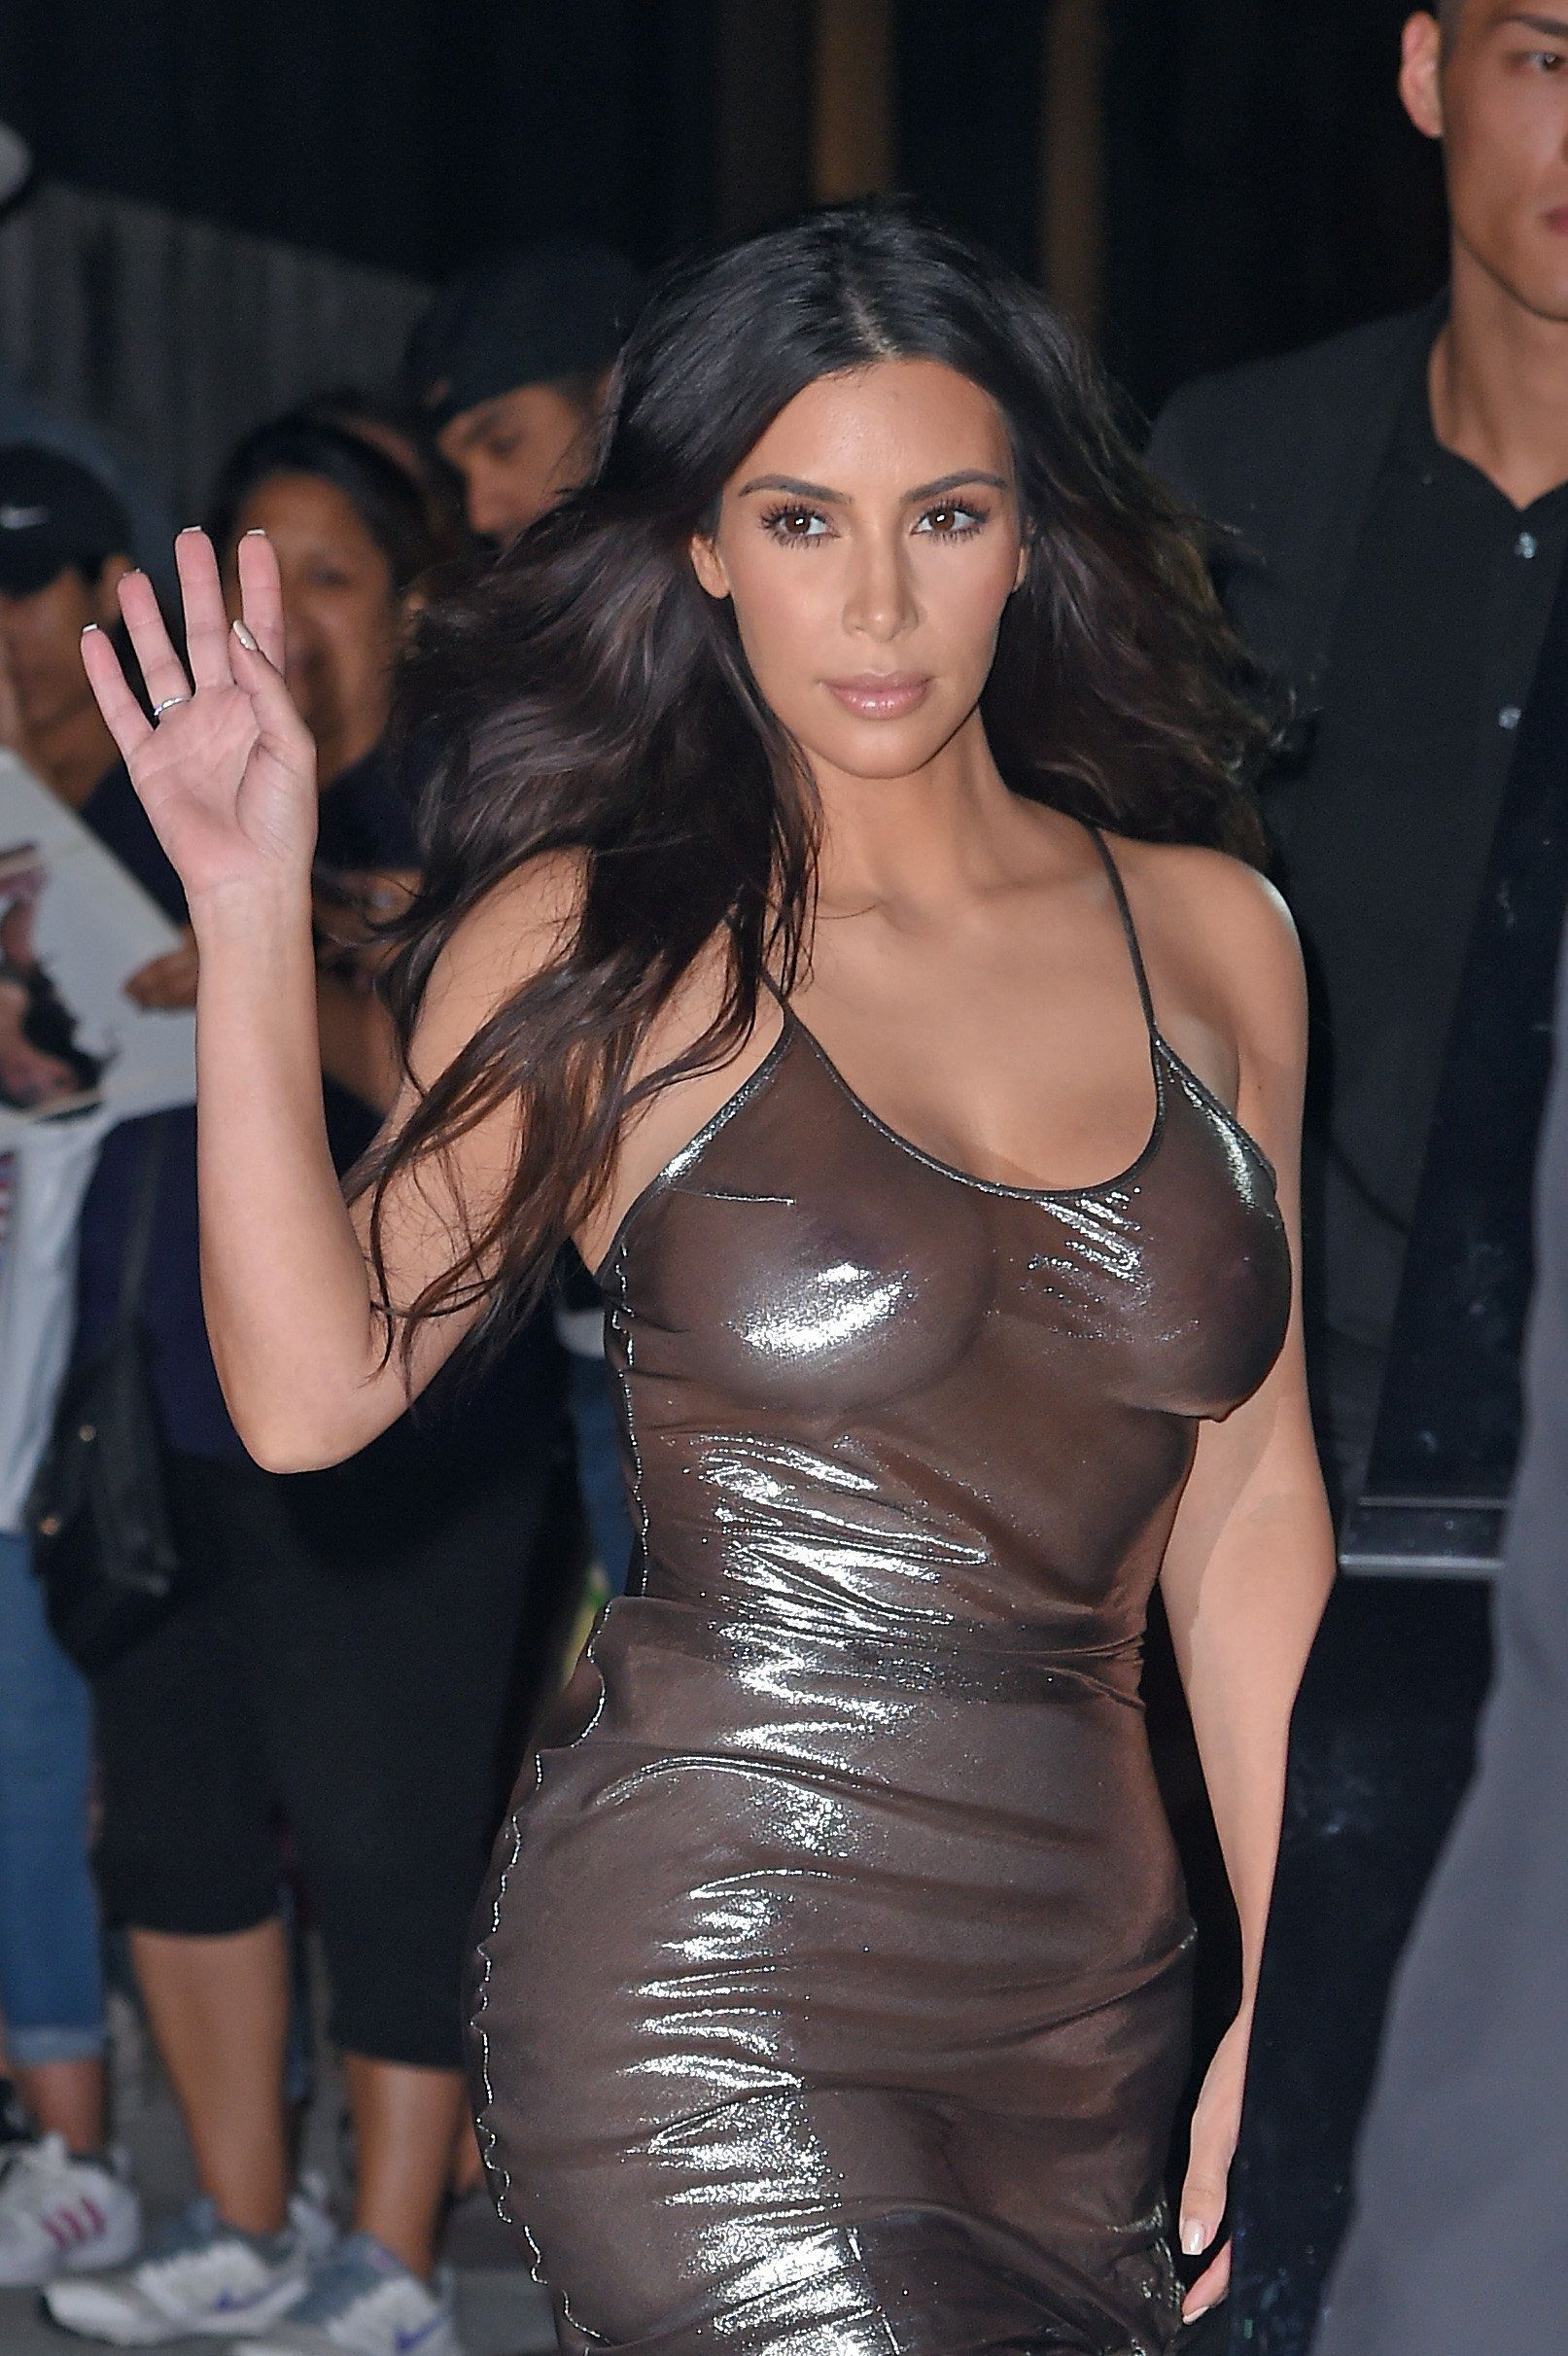 Every Celeb Attended Kanye's Concert, But Kim Went Braless